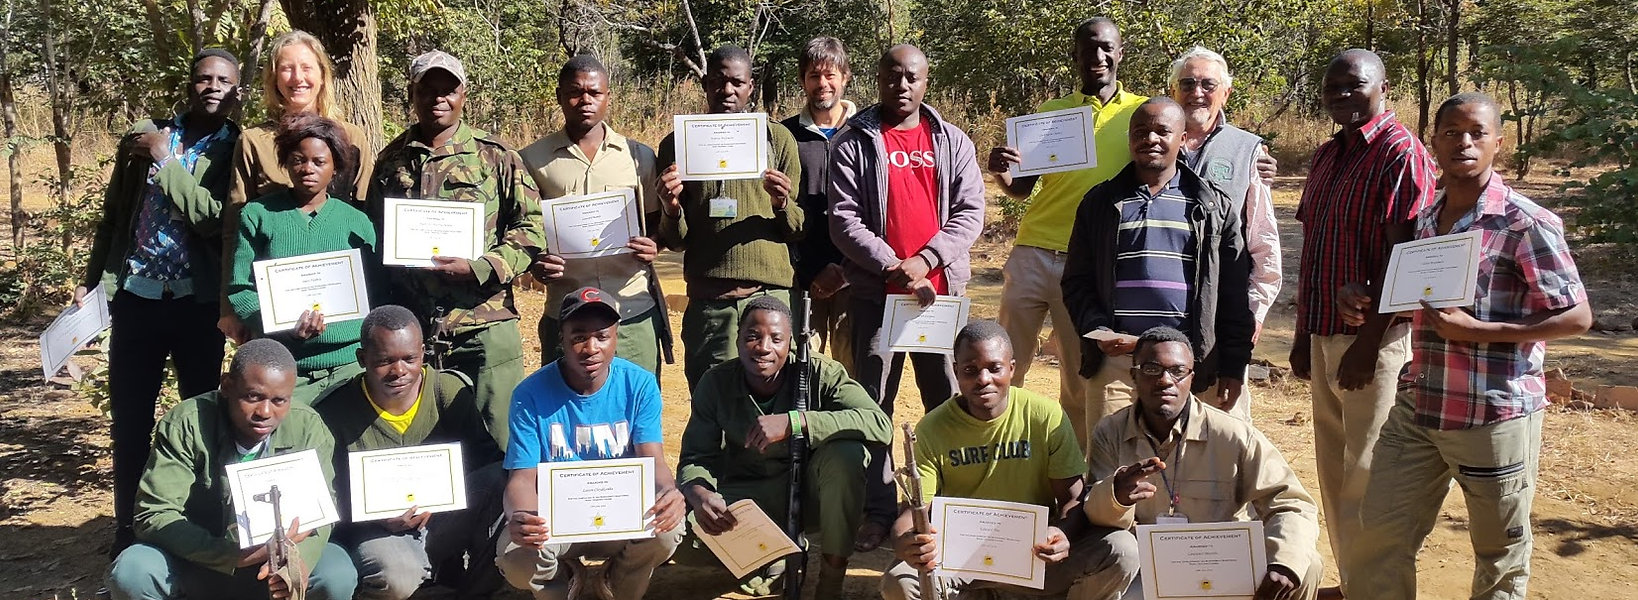 Lion Rangers Program. Save wild lions. Promote Co-existence. Lion Conservation and Research Africa.